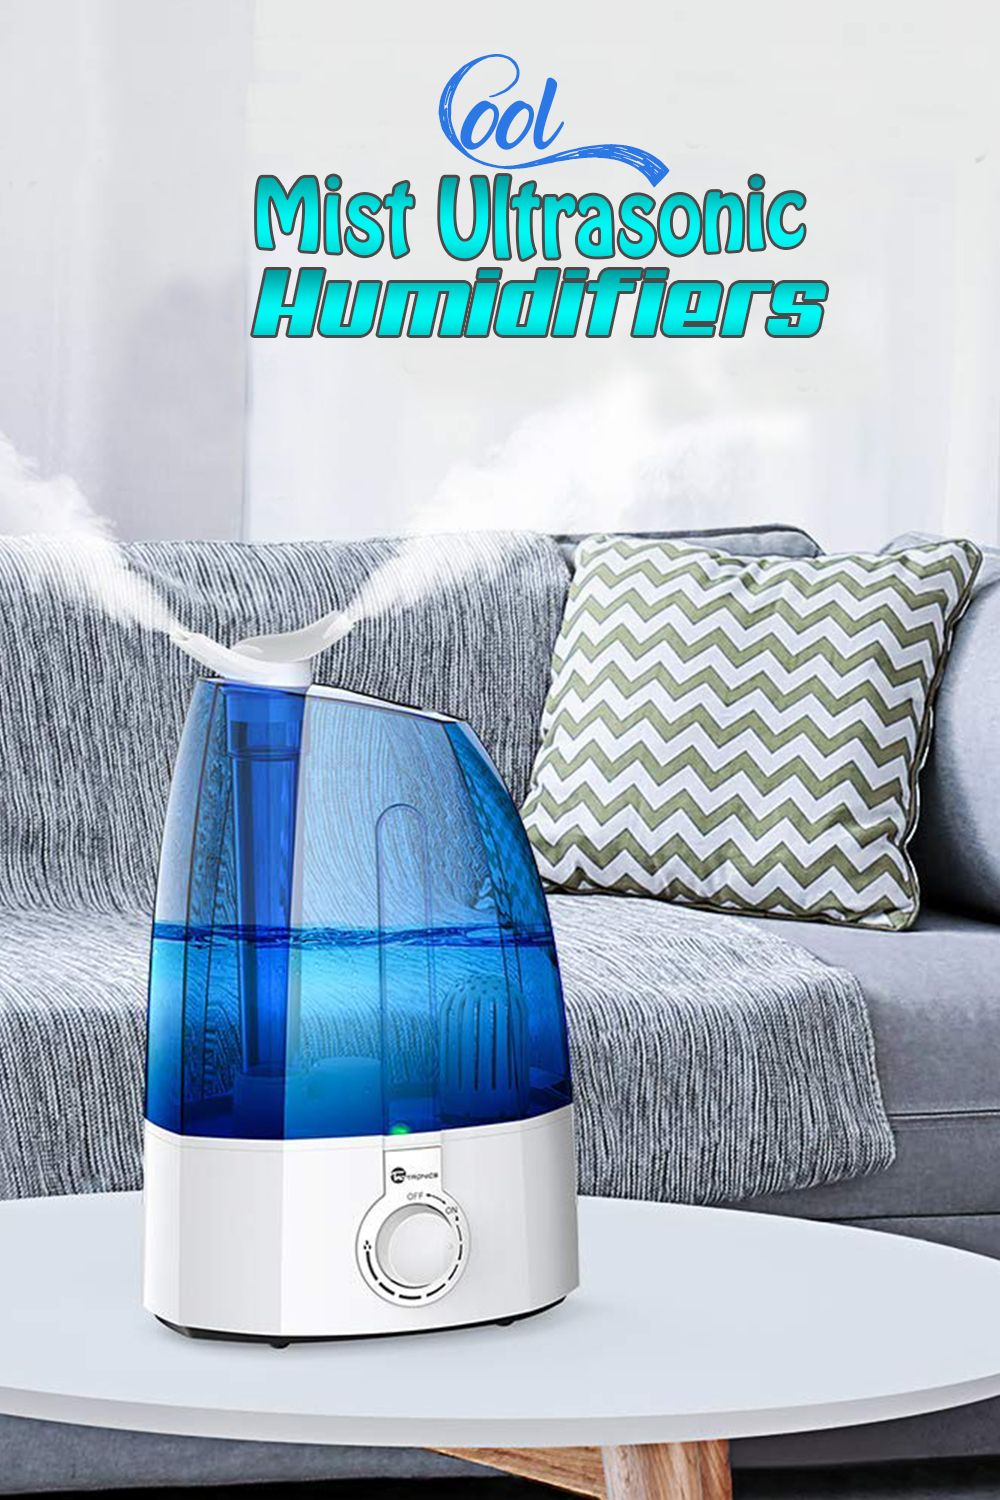 Top 10 Baby Room Humidifiers (April 2020): Reviews & Buyers Guide | Baby Humidifier, Humidifier, Best Humidifier